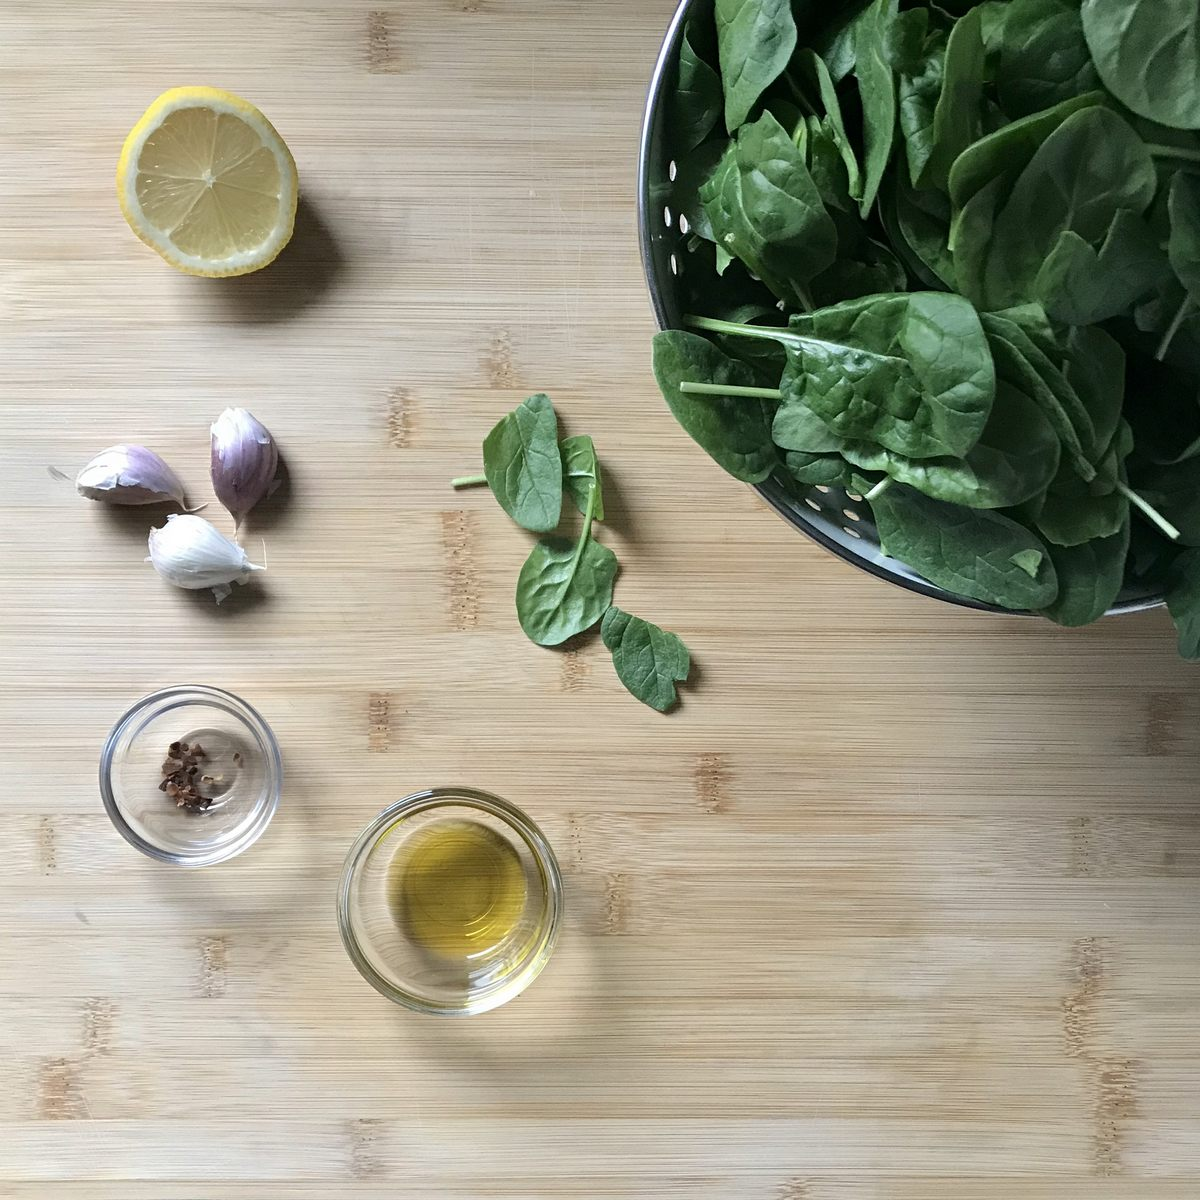 Ingredients to make sauteed spinach on a wooden board.